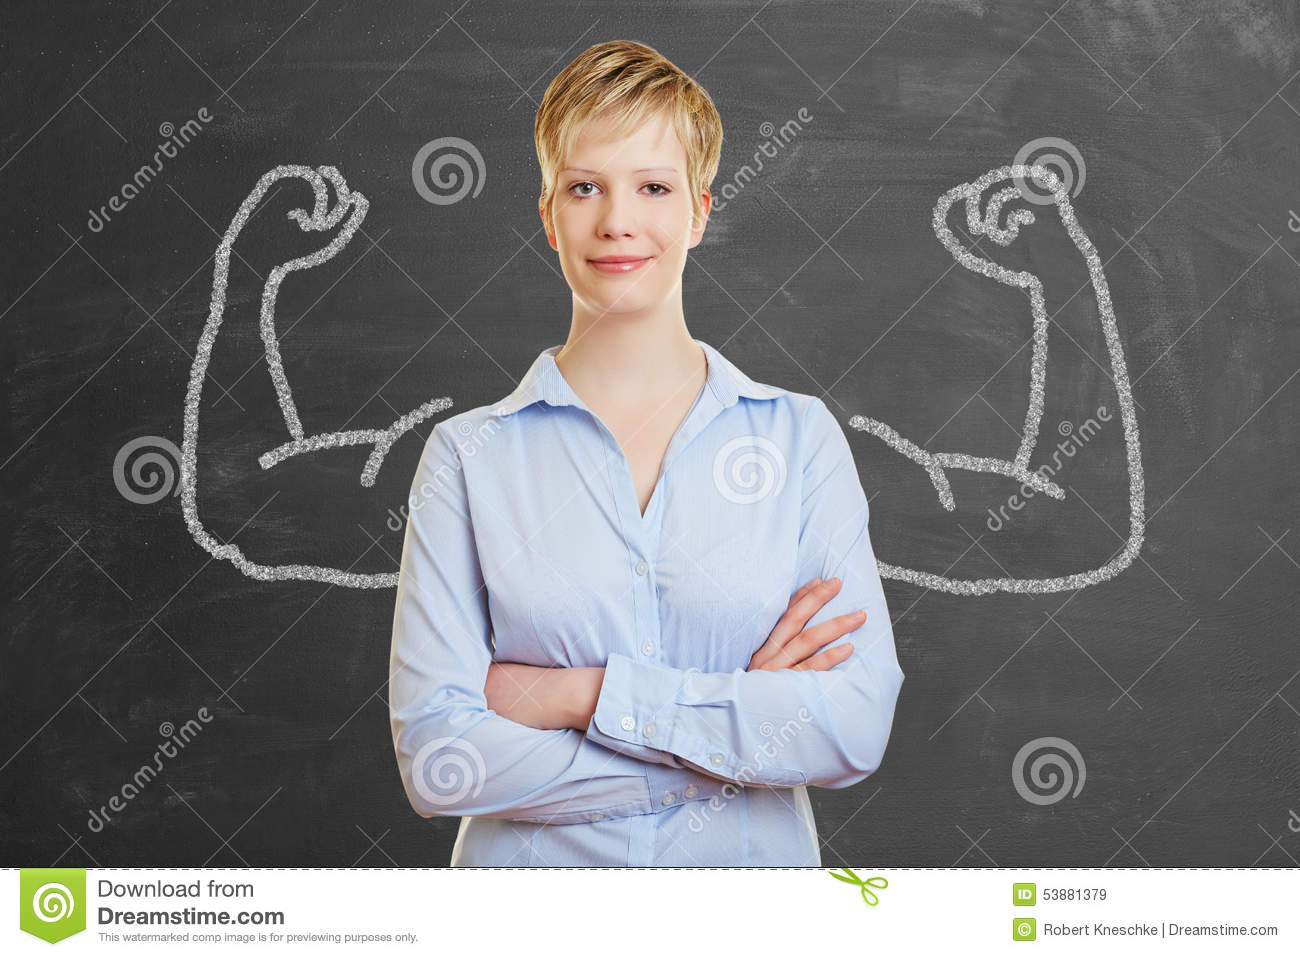 Strong business woman with muscles